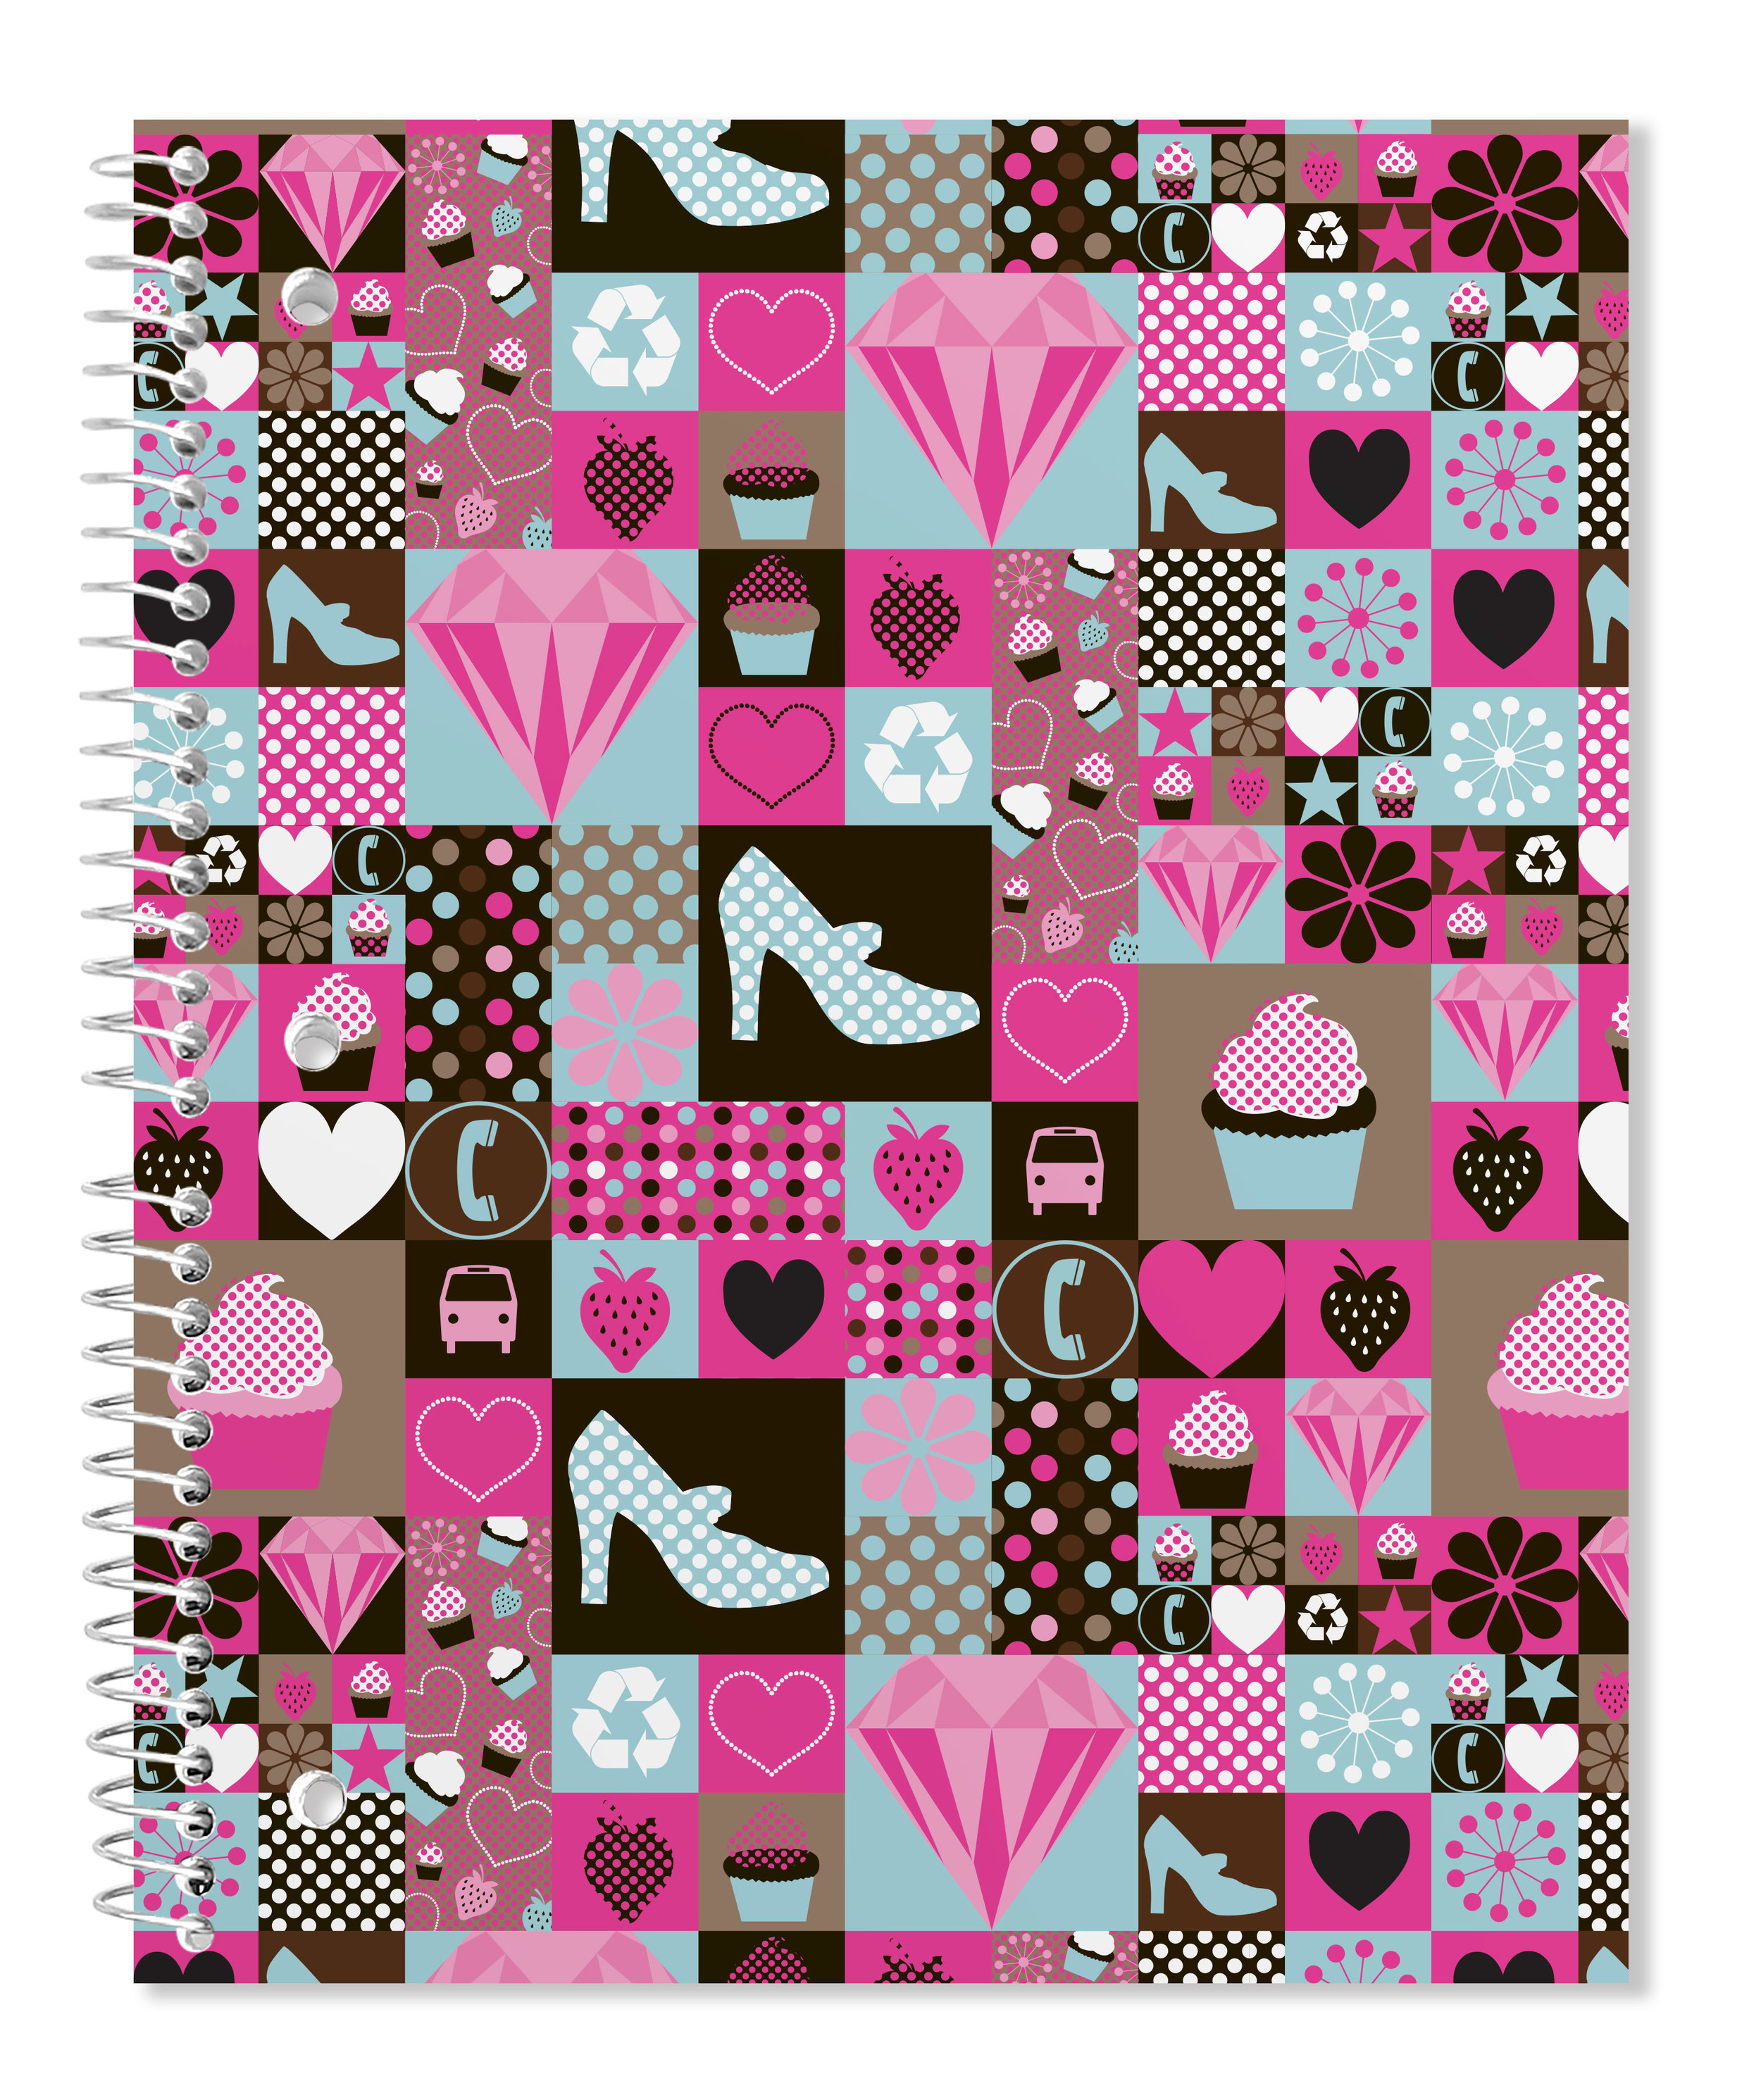 spiral-binder-girly-grid.jpg